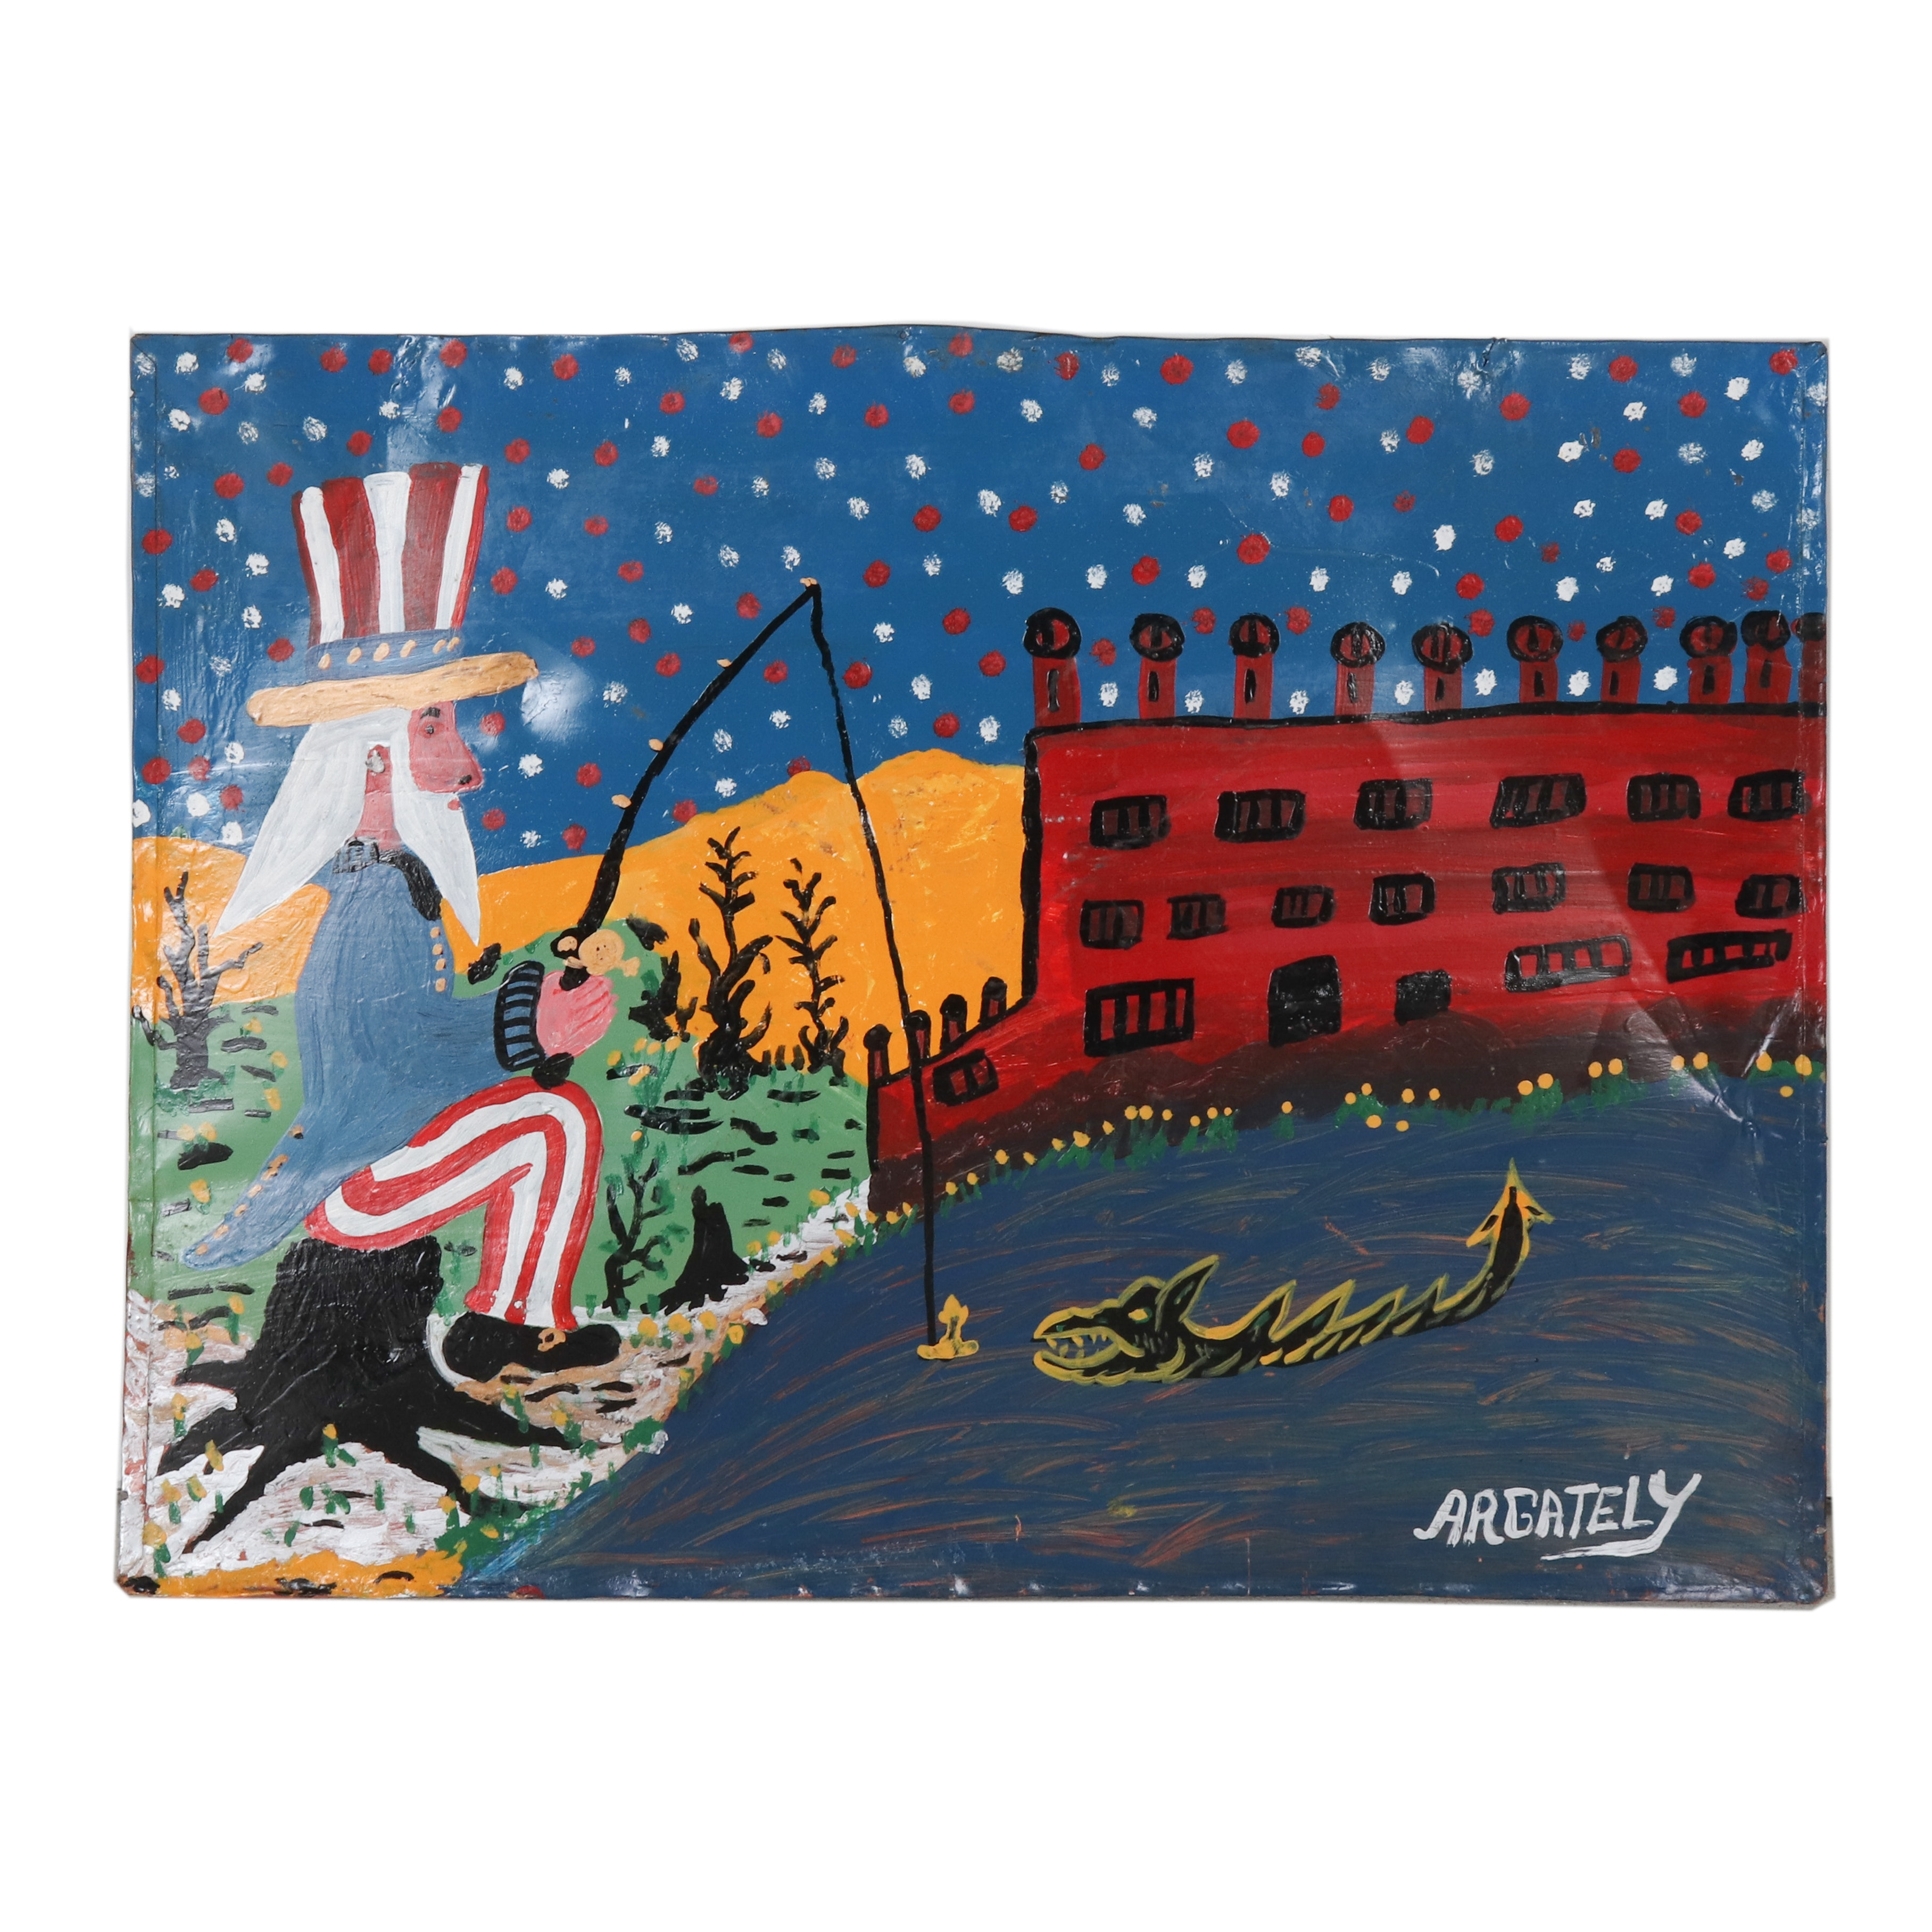 AR Gately Folk Art Acrylic Painting of Uncle Sam Fishing for a Sea Monster